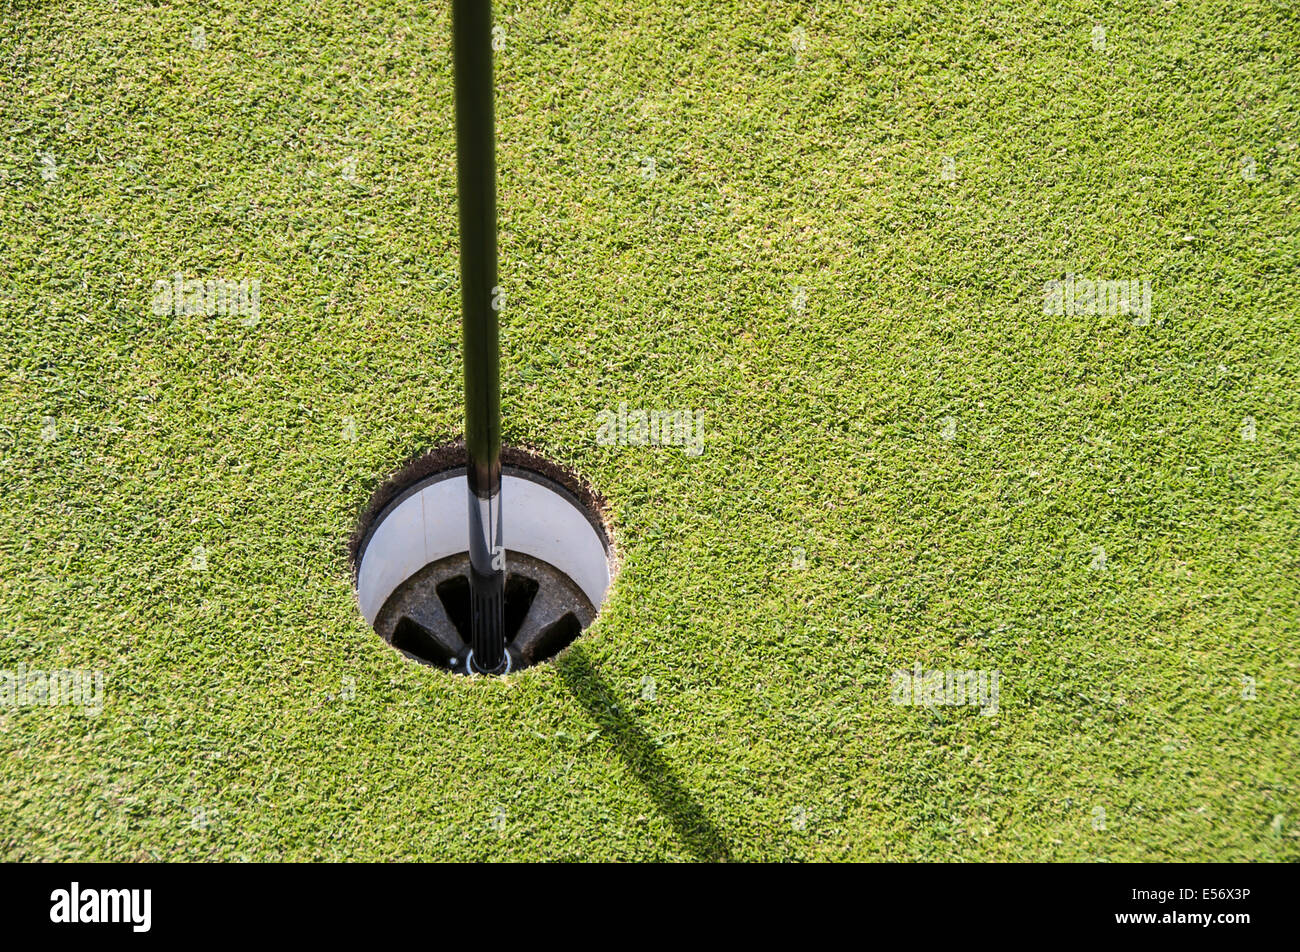 Close-up of a golf hole - Stock Image